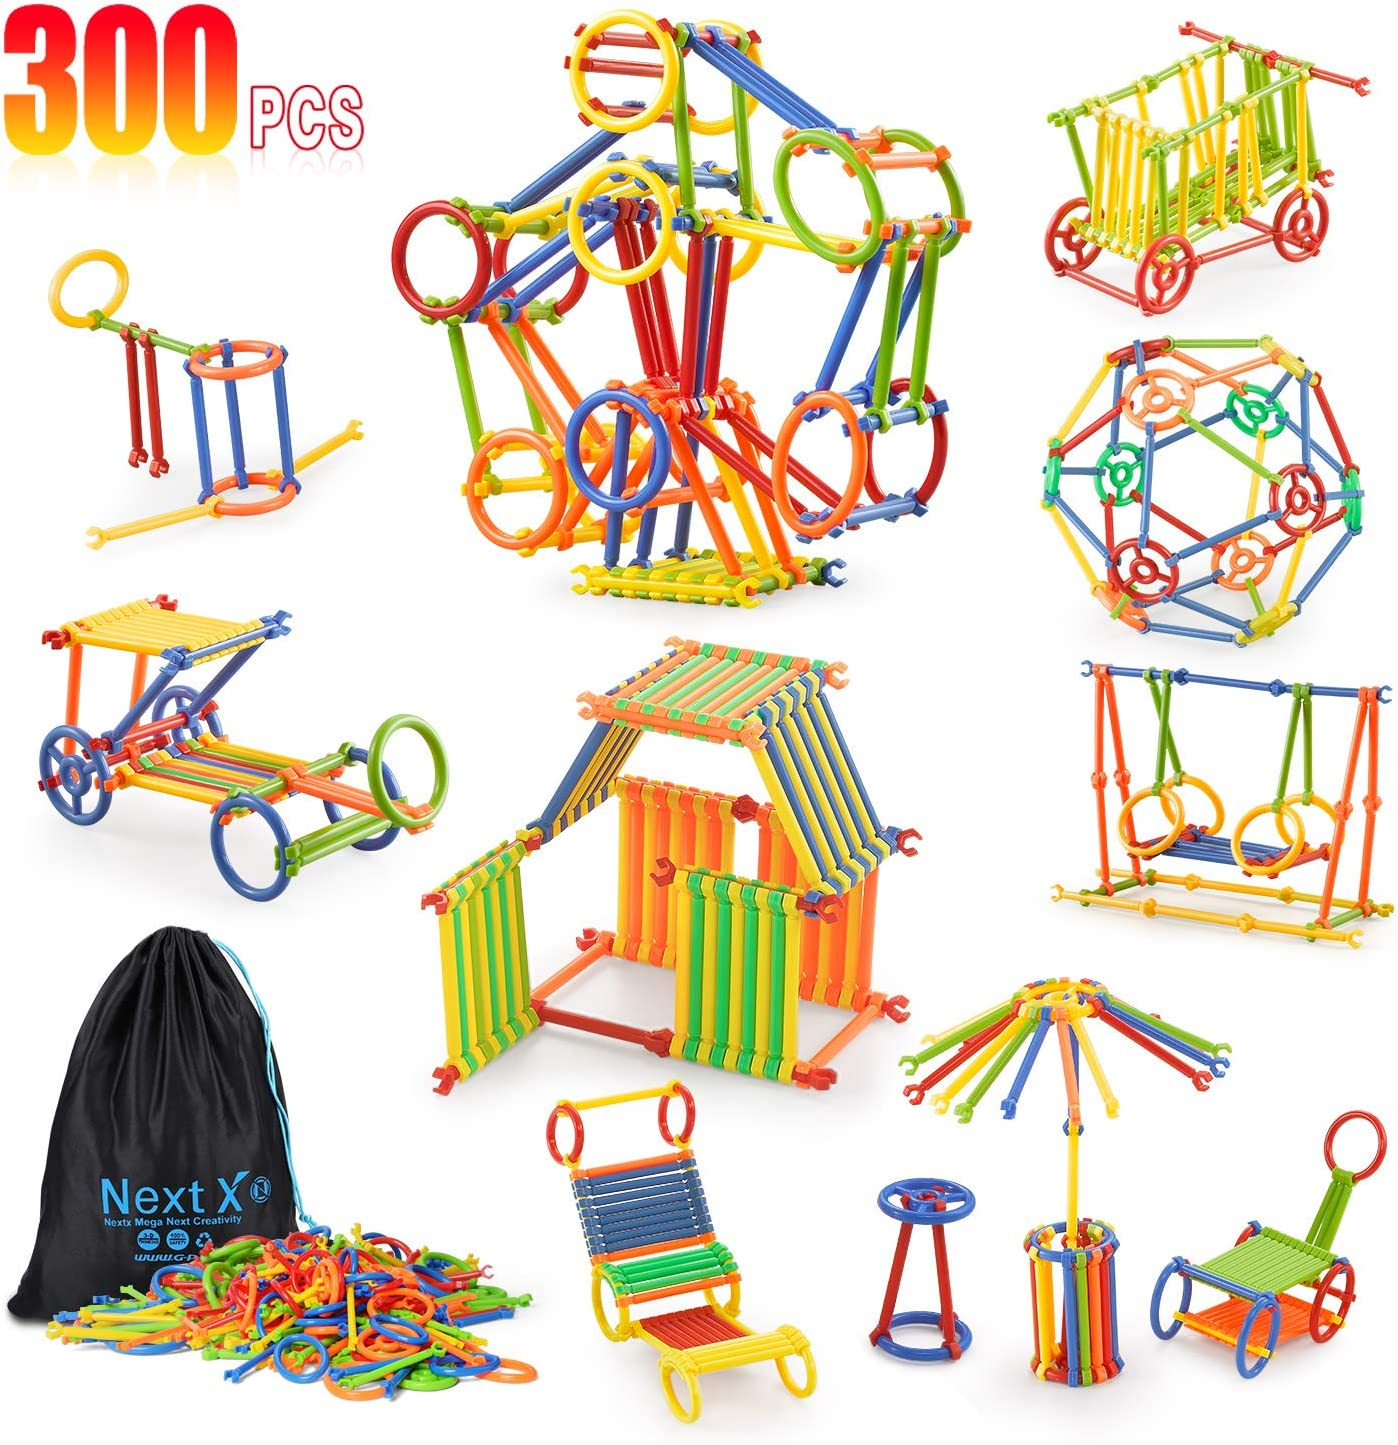 300 Pieces Educational Building Toys